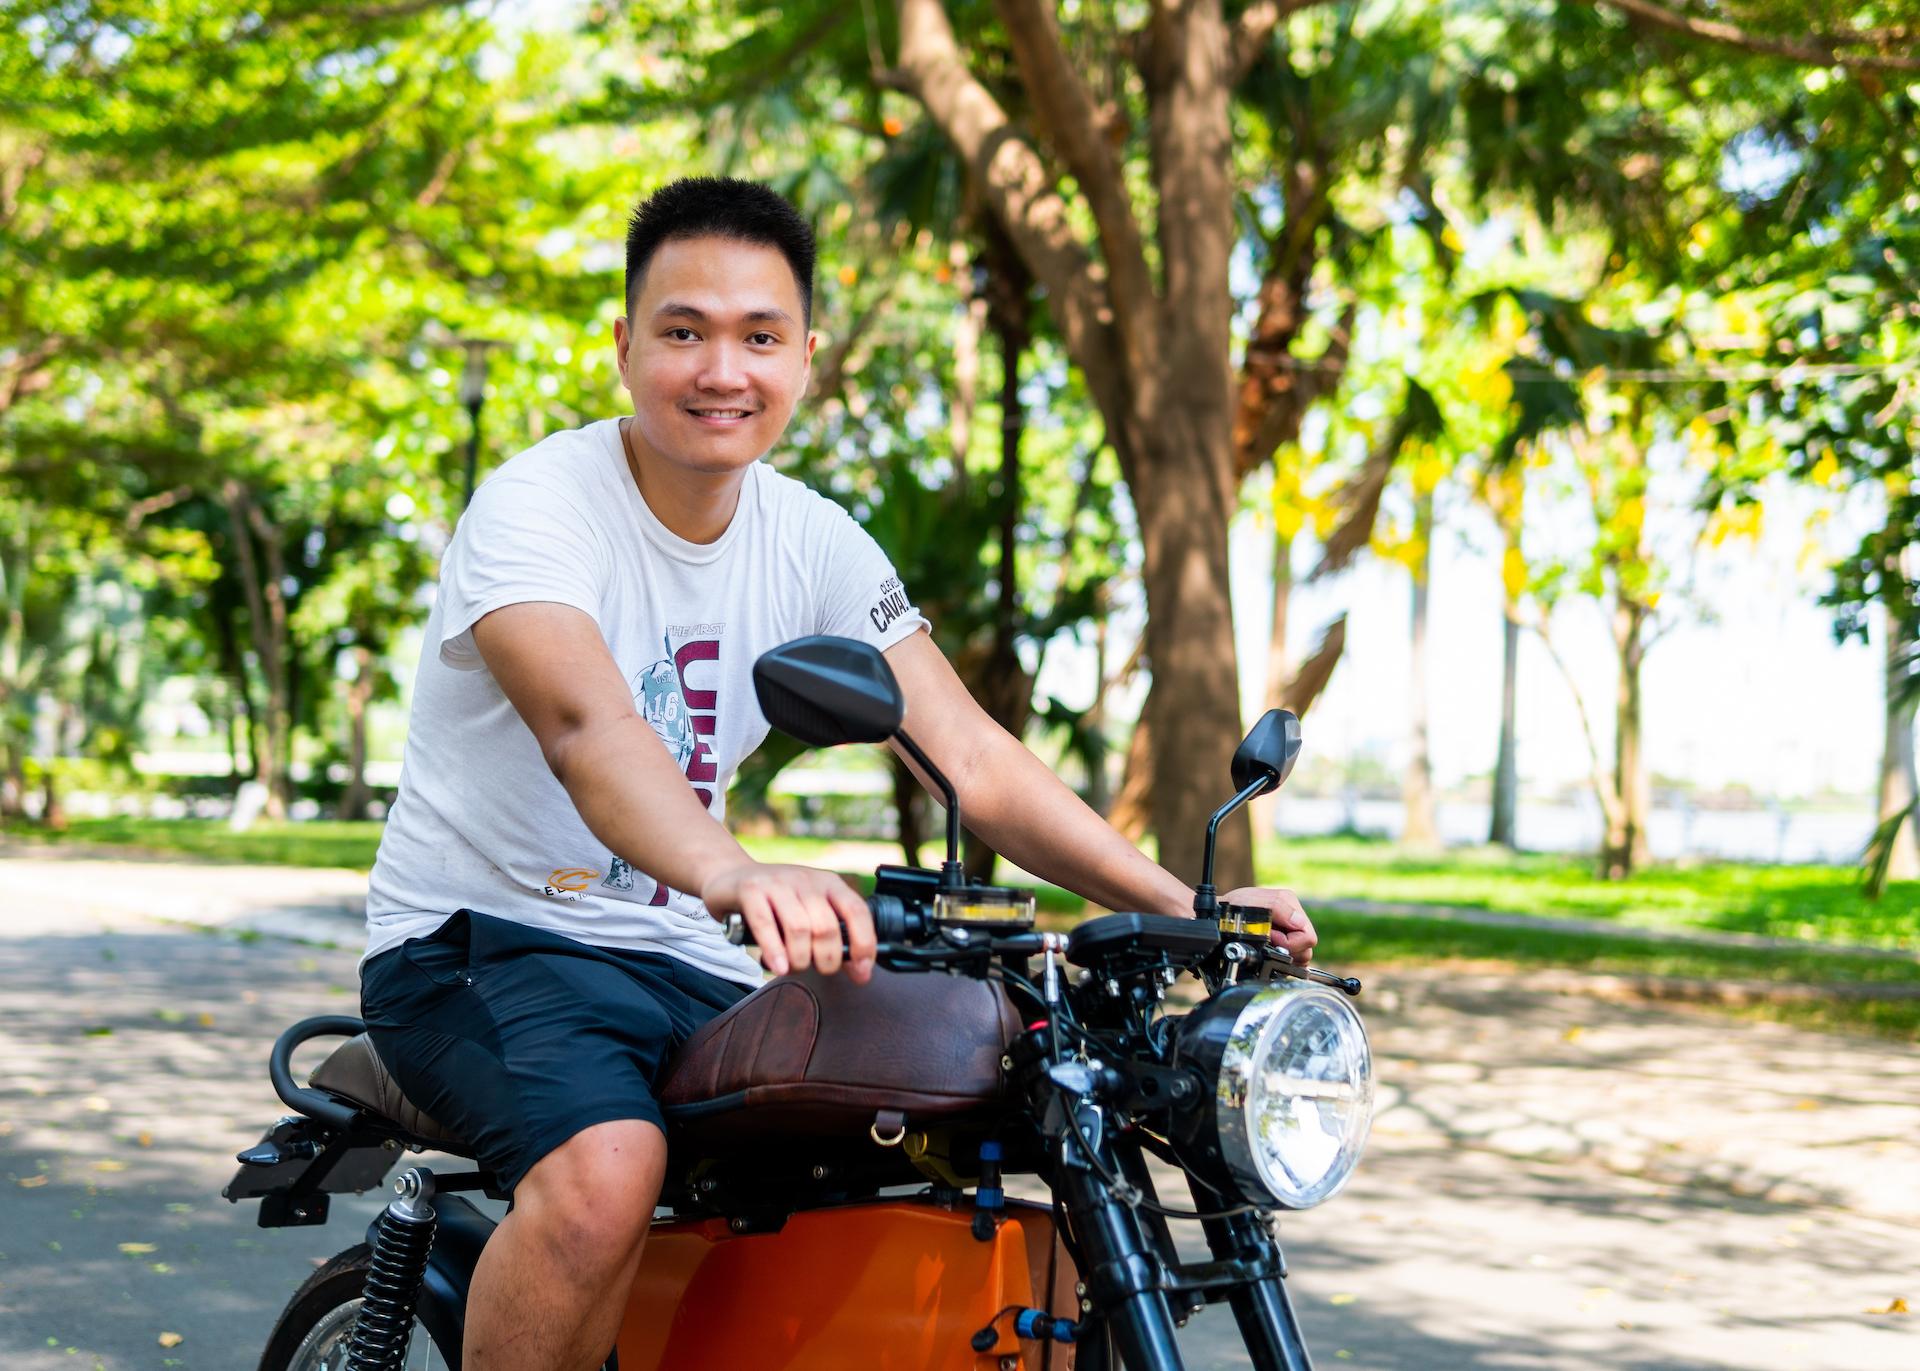 Son Nguyen, Founder and CEO of Dat Bike